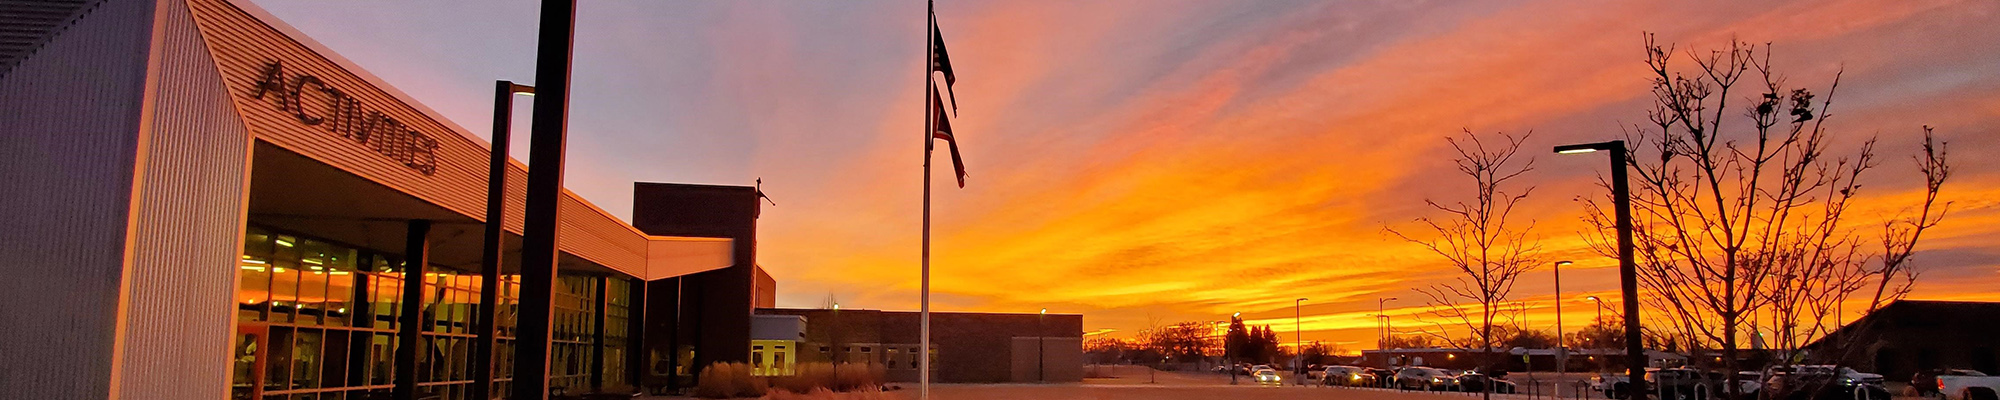 Sunset view of Powell Middle School campus